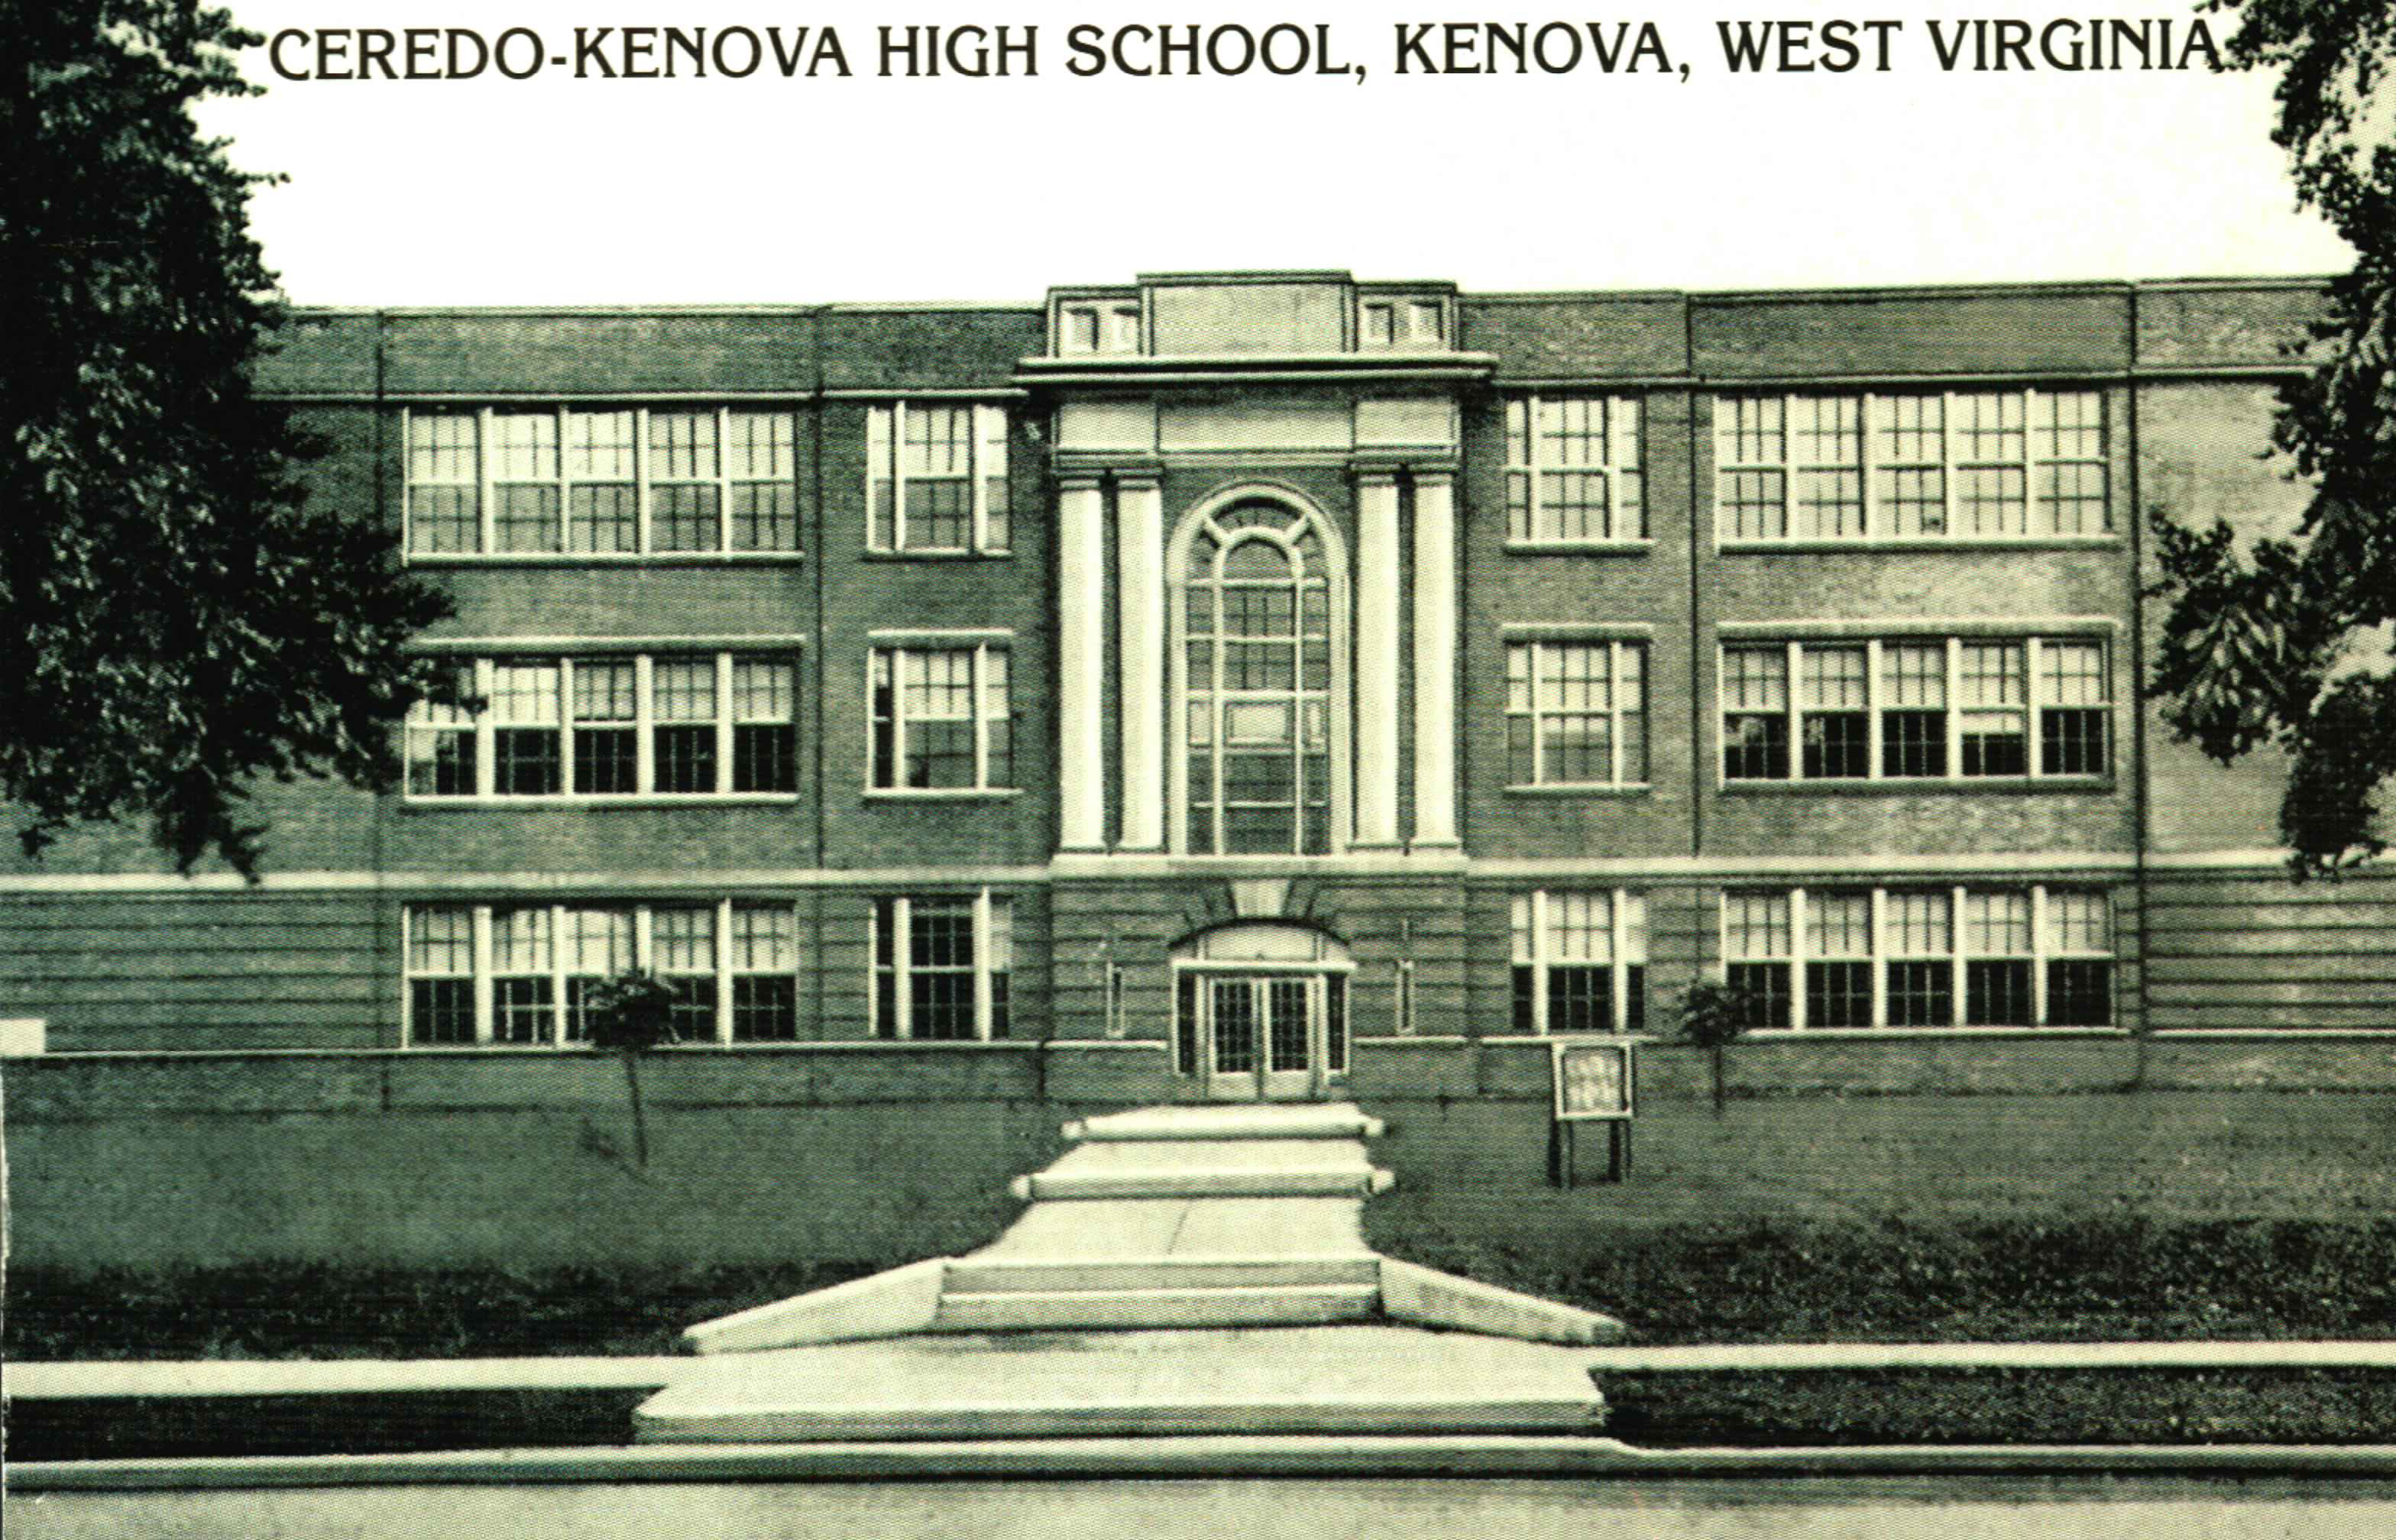 A postcard of C-K High from Griffith & Feil Drugstore. Courtesy of the Ceredo Historical Society Museum